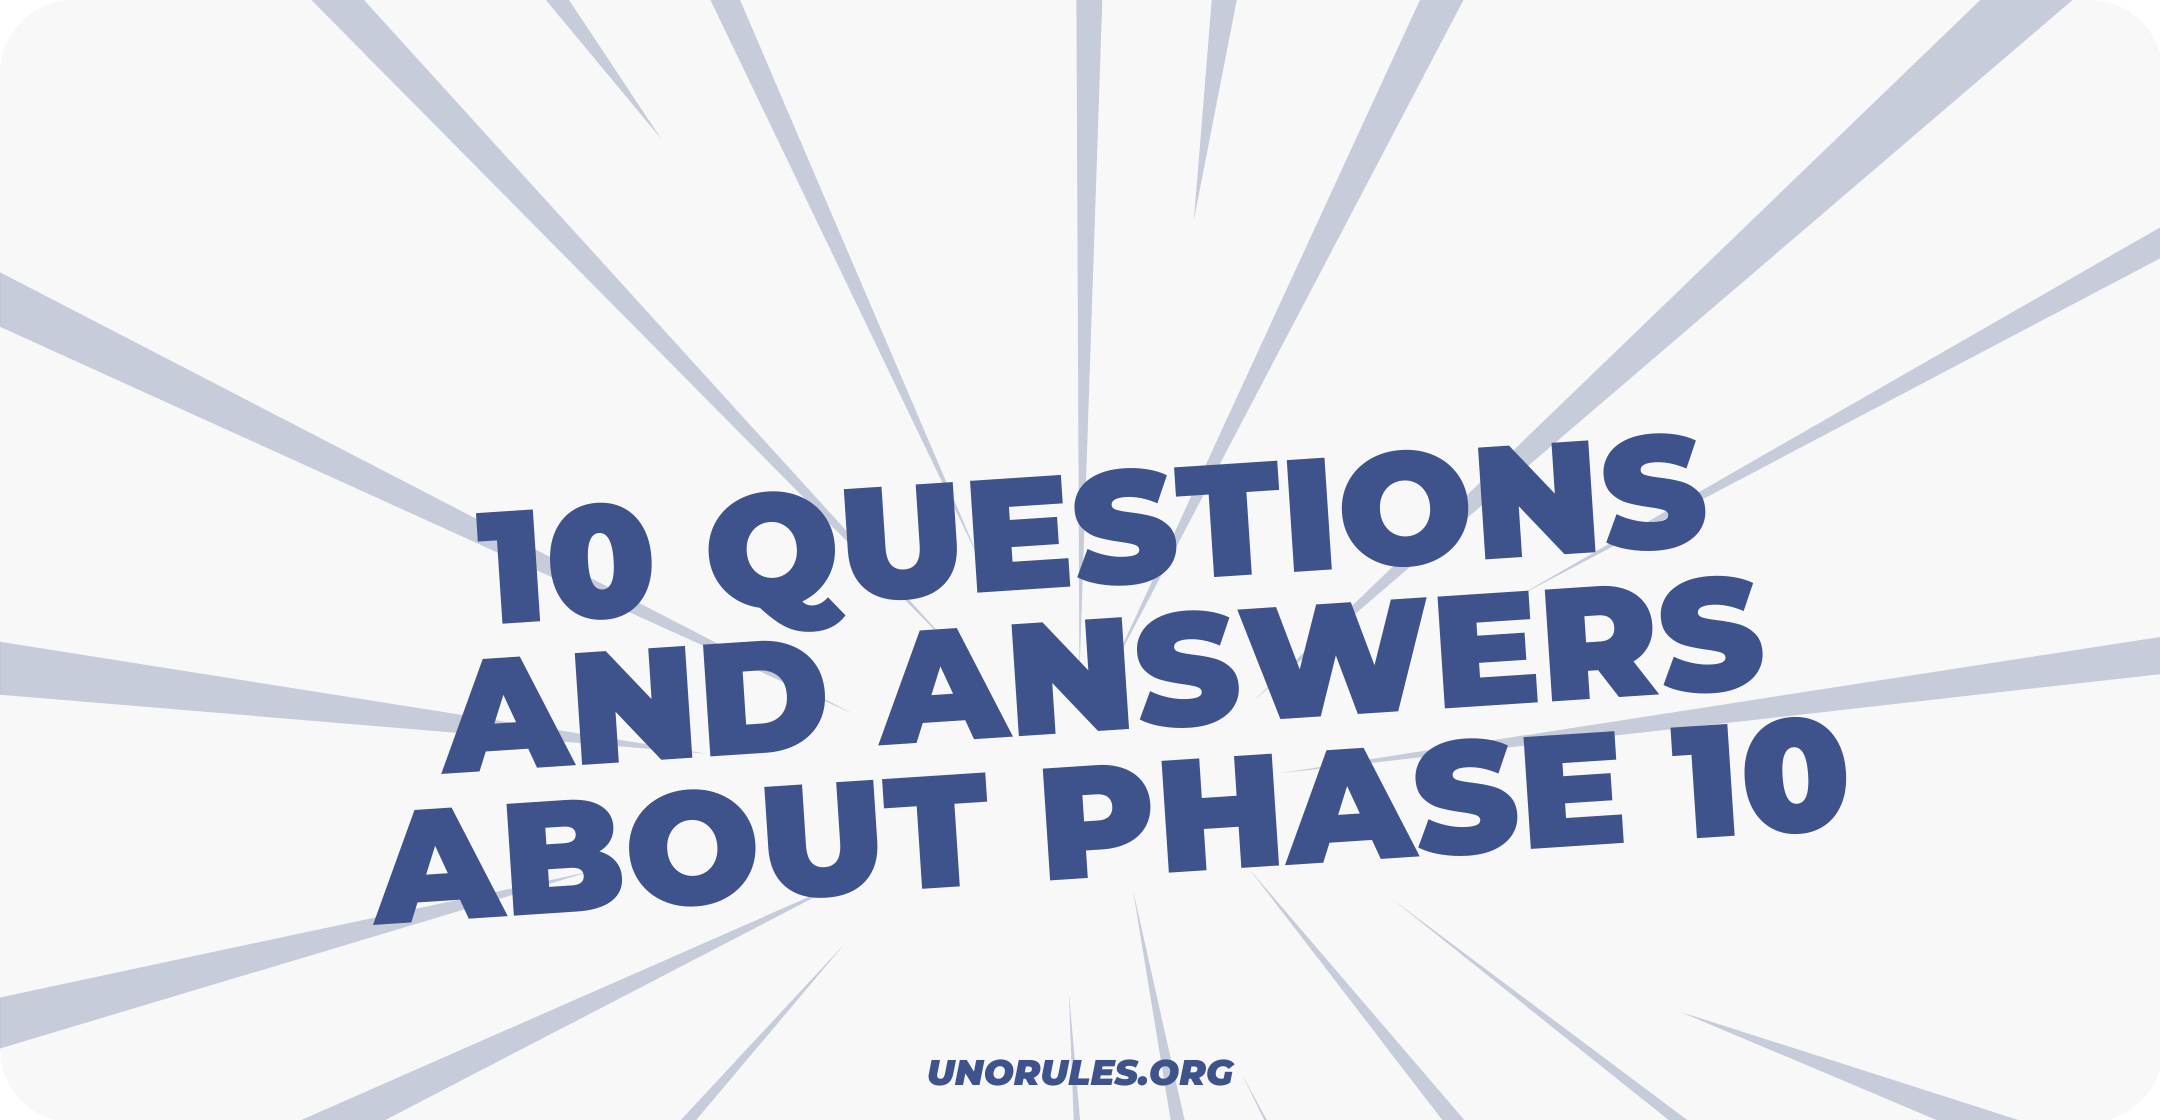 10 questions and answers about Phase 10